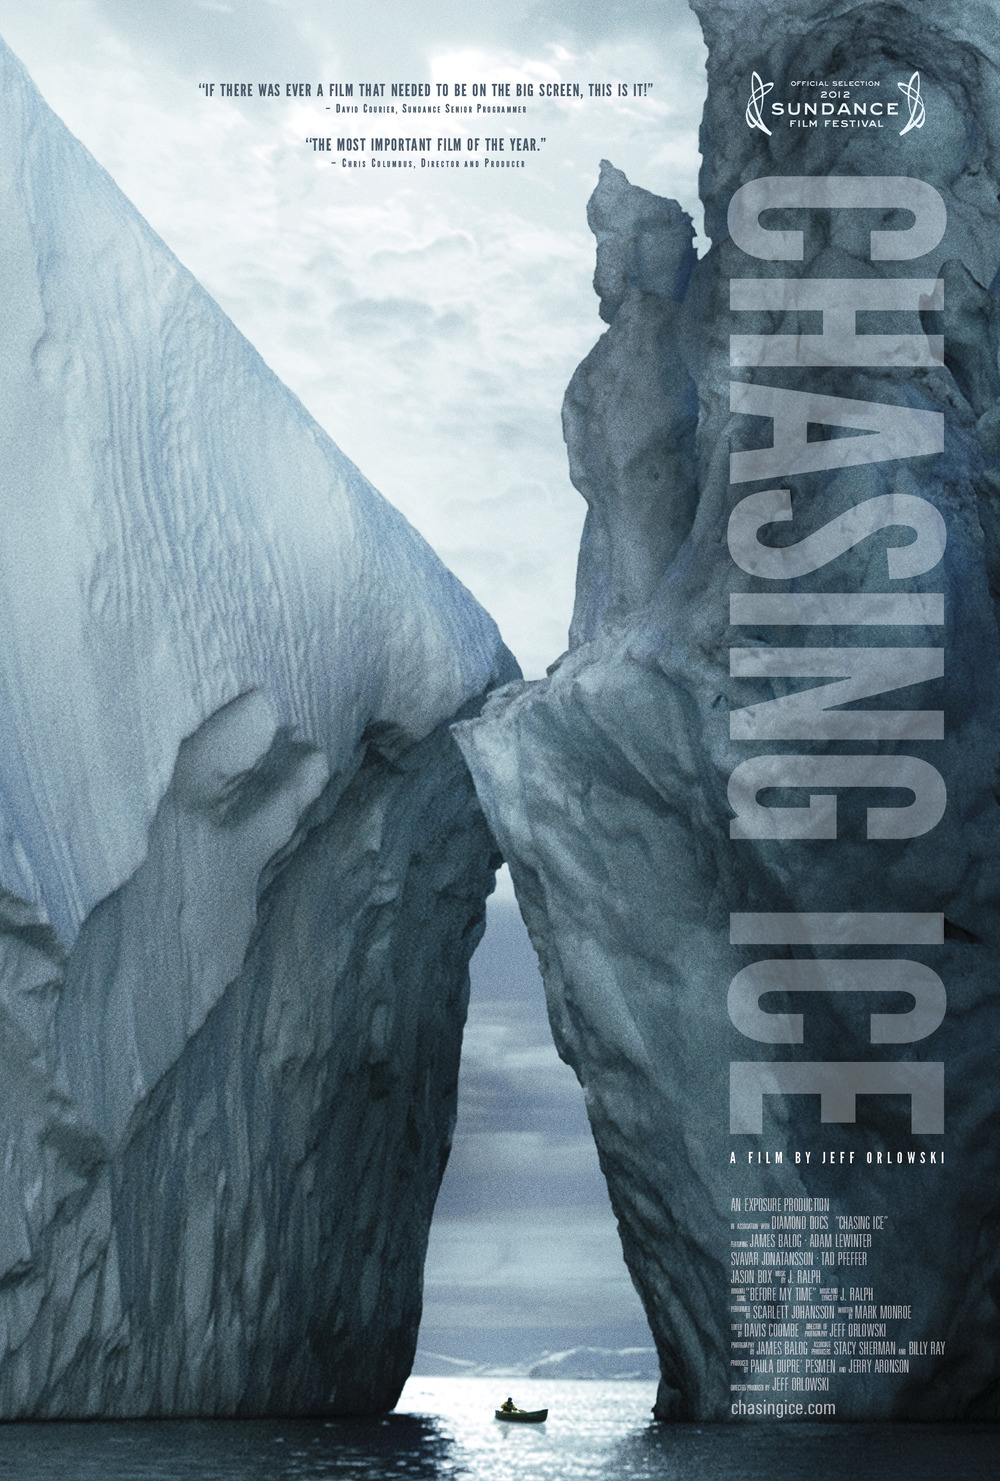 Chasing Ice   is the story of one man's mission to change the tide of history by gathering undeniable evidence of our changing planet. The film captures the work of James Balog as he creates his latest project: The Extreme Ice Survey. Balog deployed revolutionary time-lapse cameras across the brutal Arctic to capture a multi-year record of the world's changing glaciers. These hauntingly beautiful videos compress years into seconds and reveal ancient mountains of ice in motion as they disappear at a breathtaking rate. You can learn more about the film at our  Chasing Ice website .